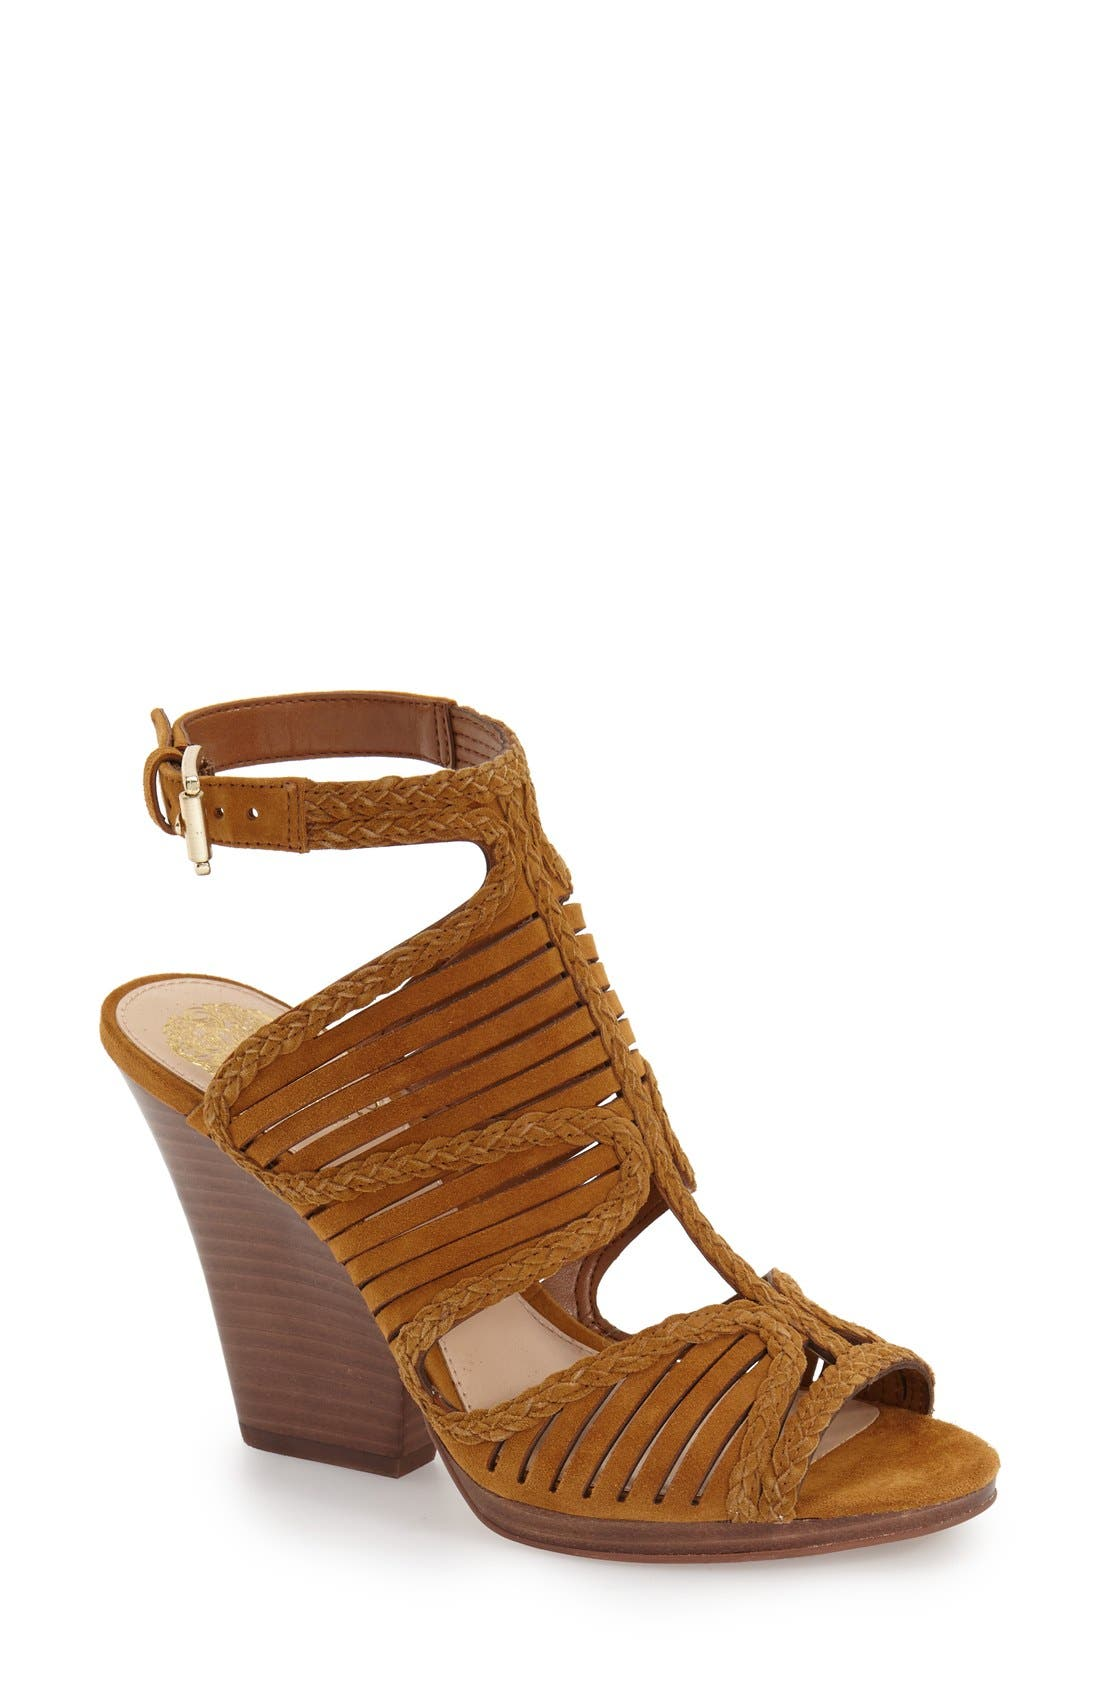 Alternate Image 1 Selected - Vince Camuto 'Janil' Sandal (Women) (Nordstrom Exclusive)